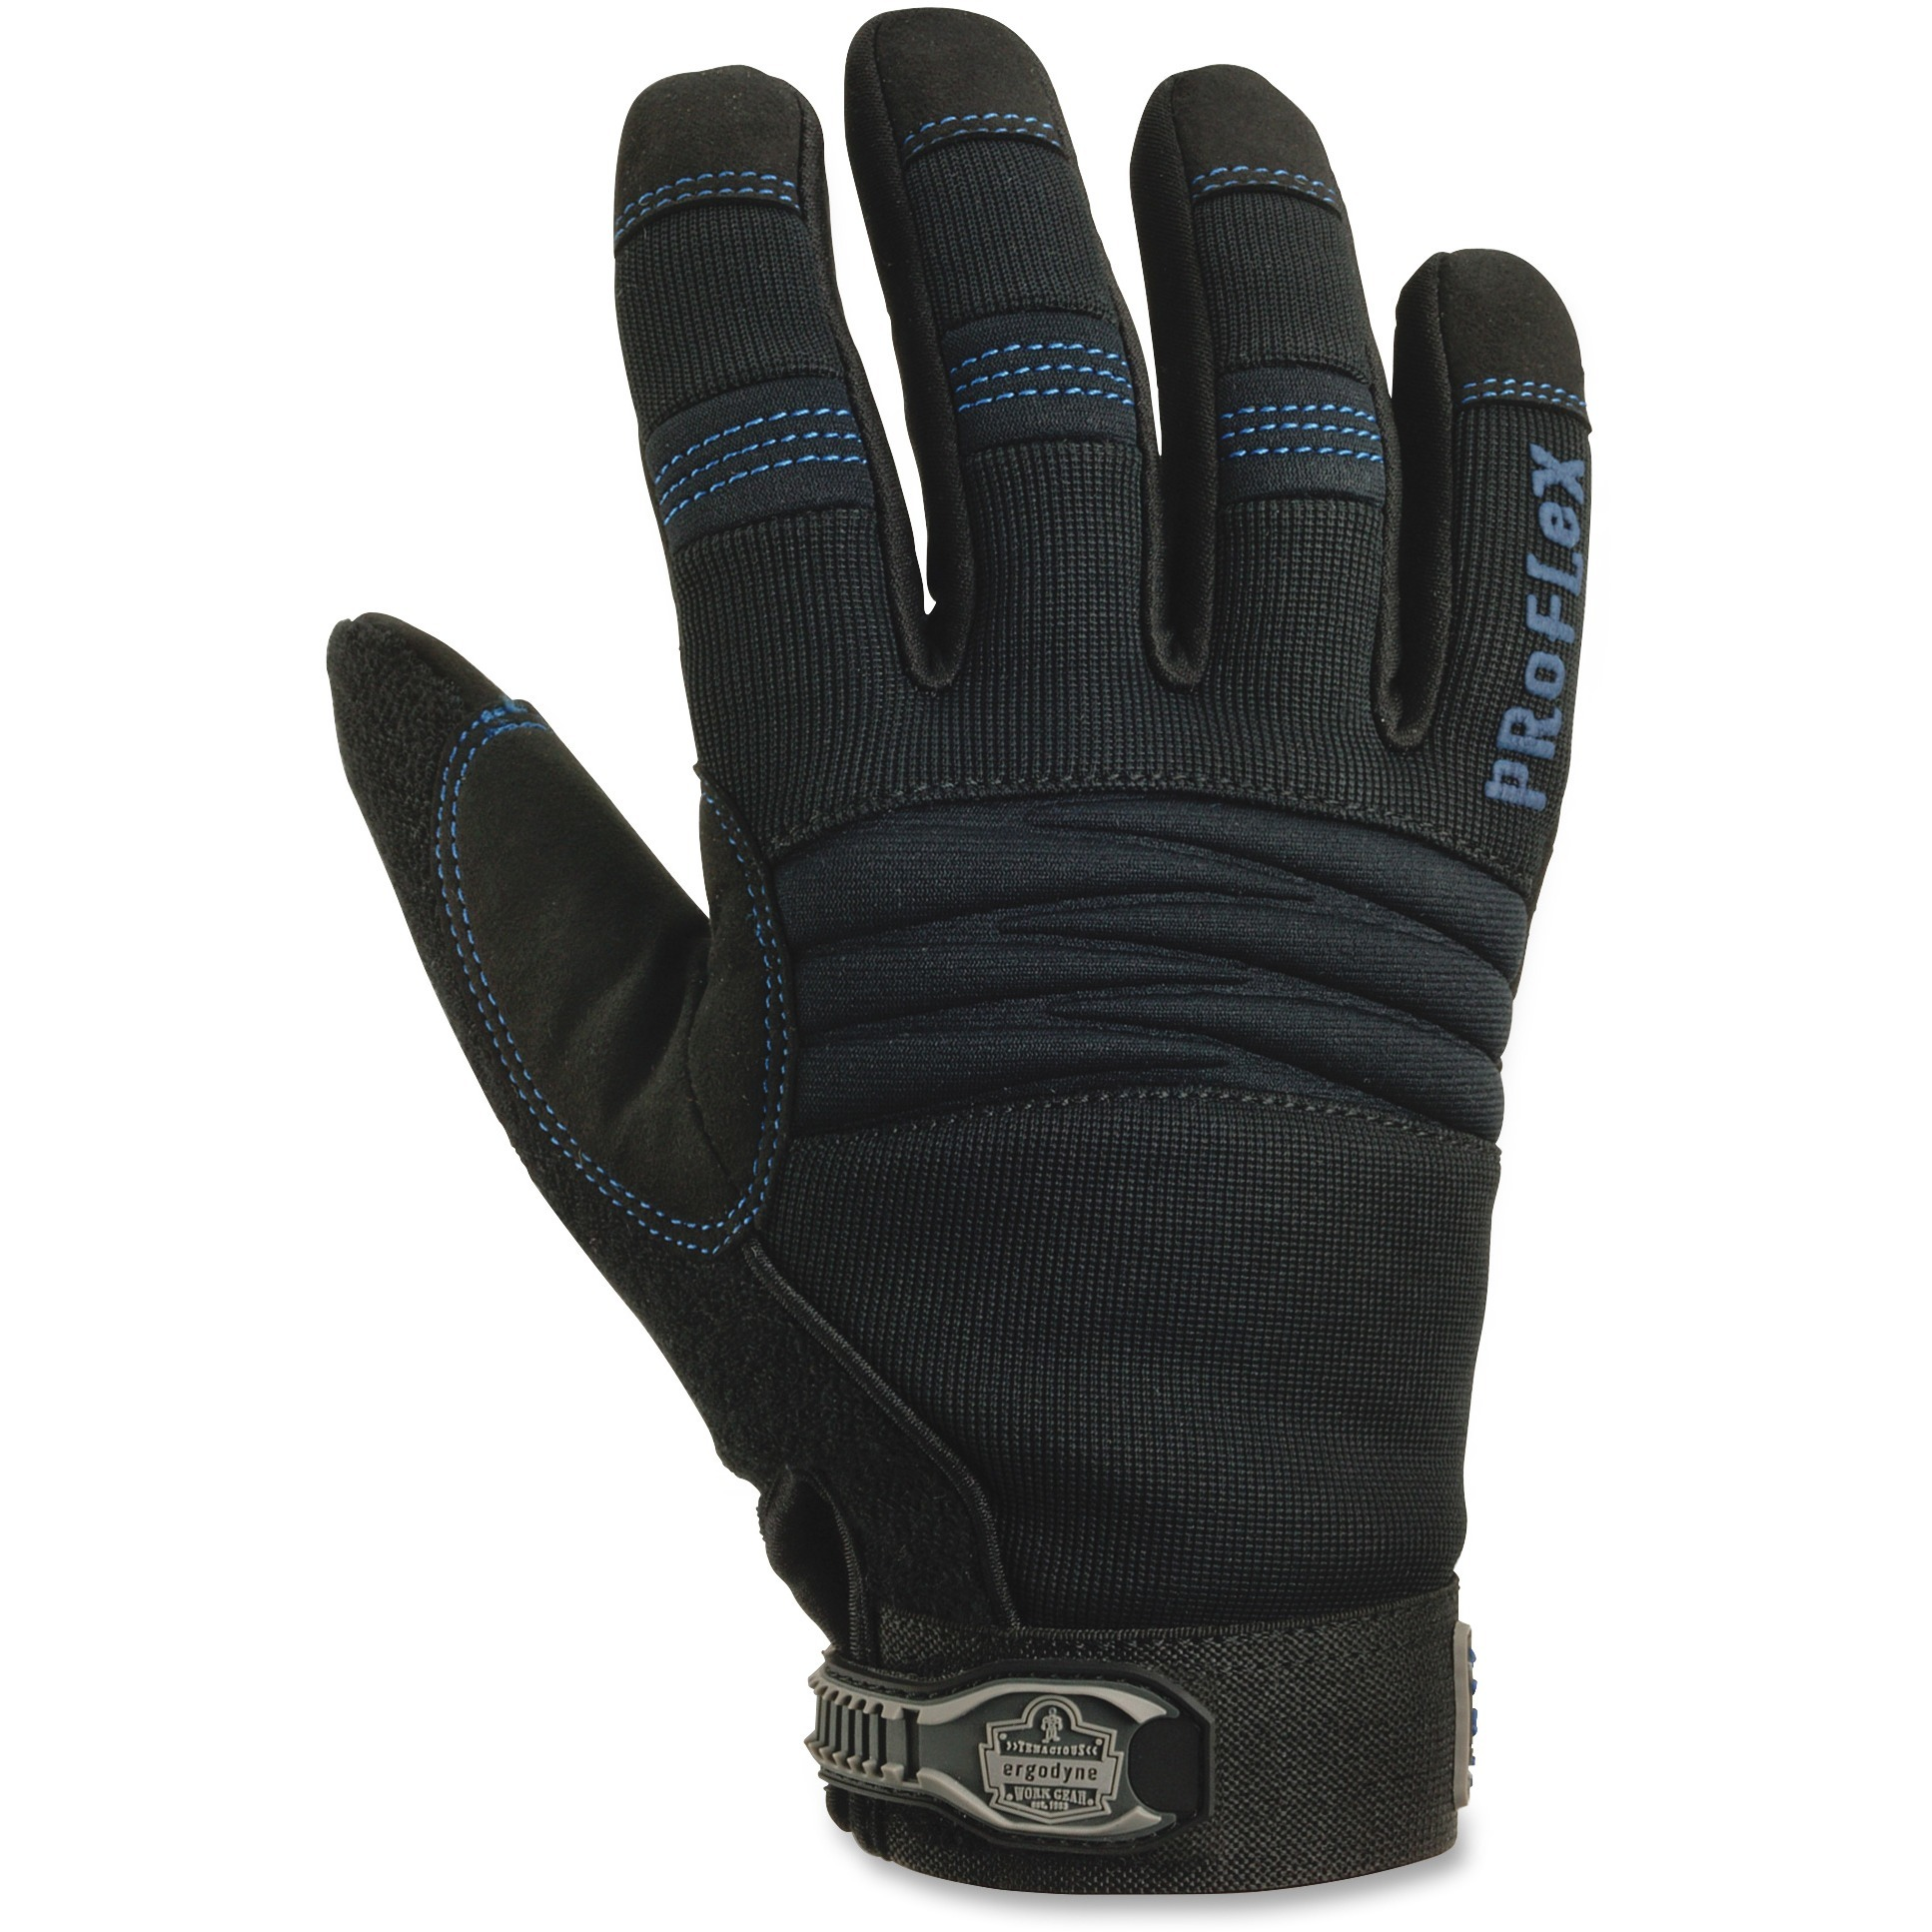 ProFlex Thermal Utility Gloves by Tenacious Holdings, Inc